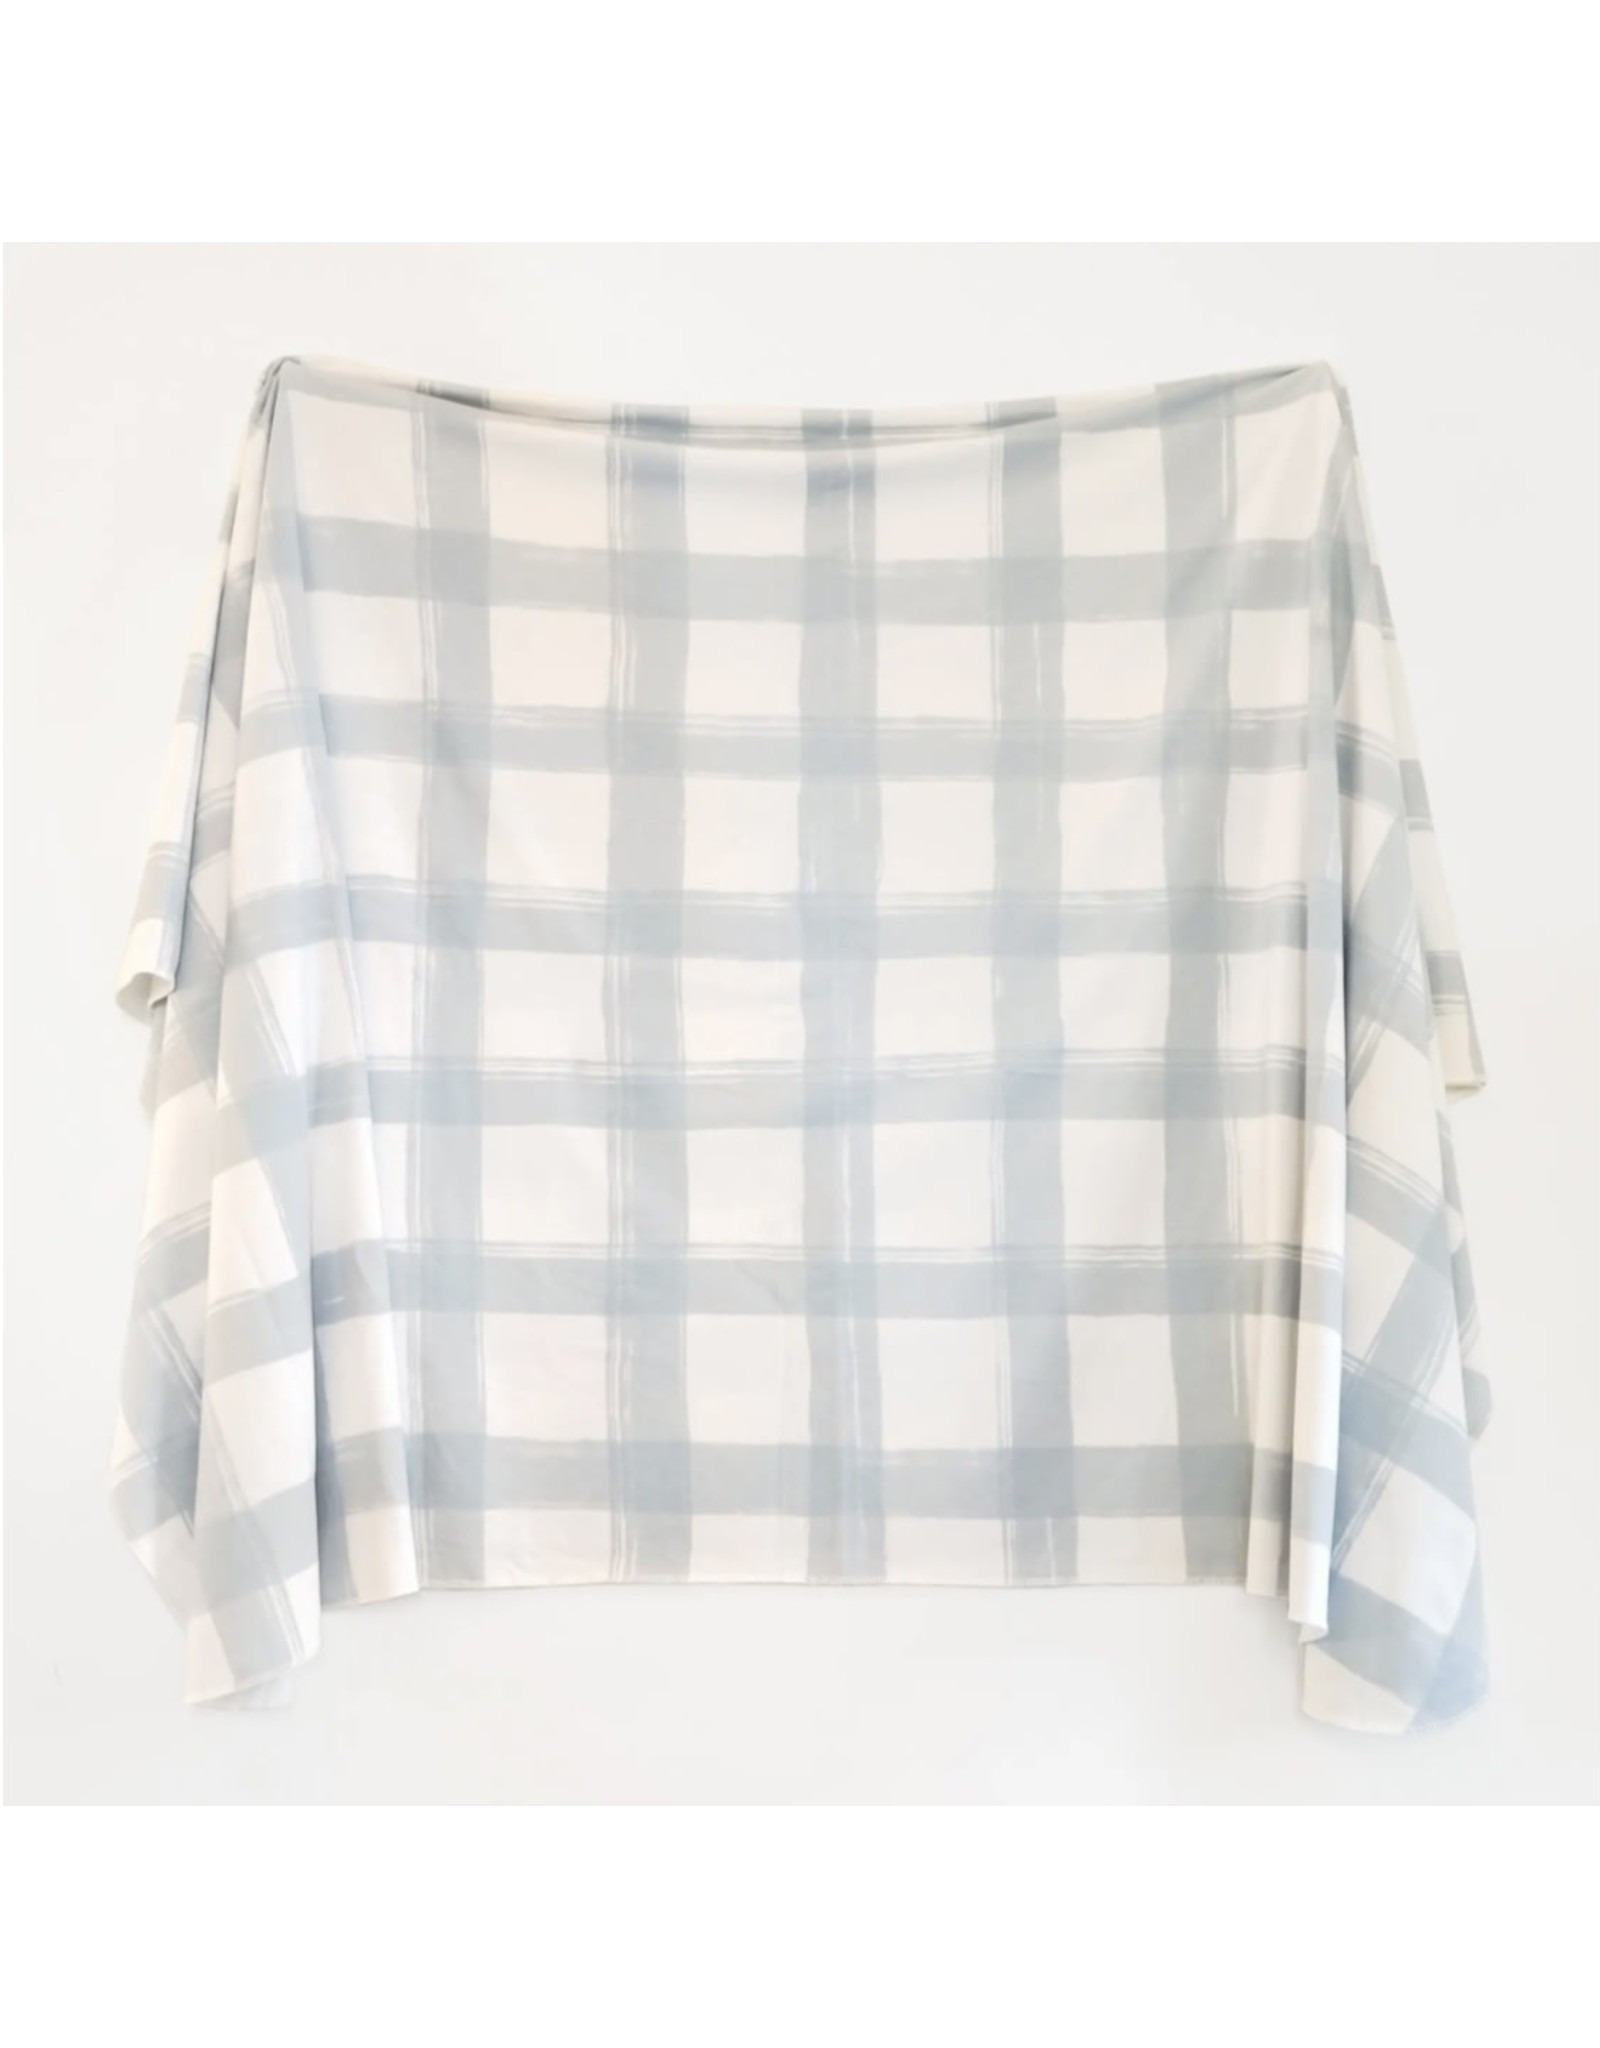 Village Baby Village Baby- Extra Soft Stretchy Knit Swaddle Blanket: French Gingham